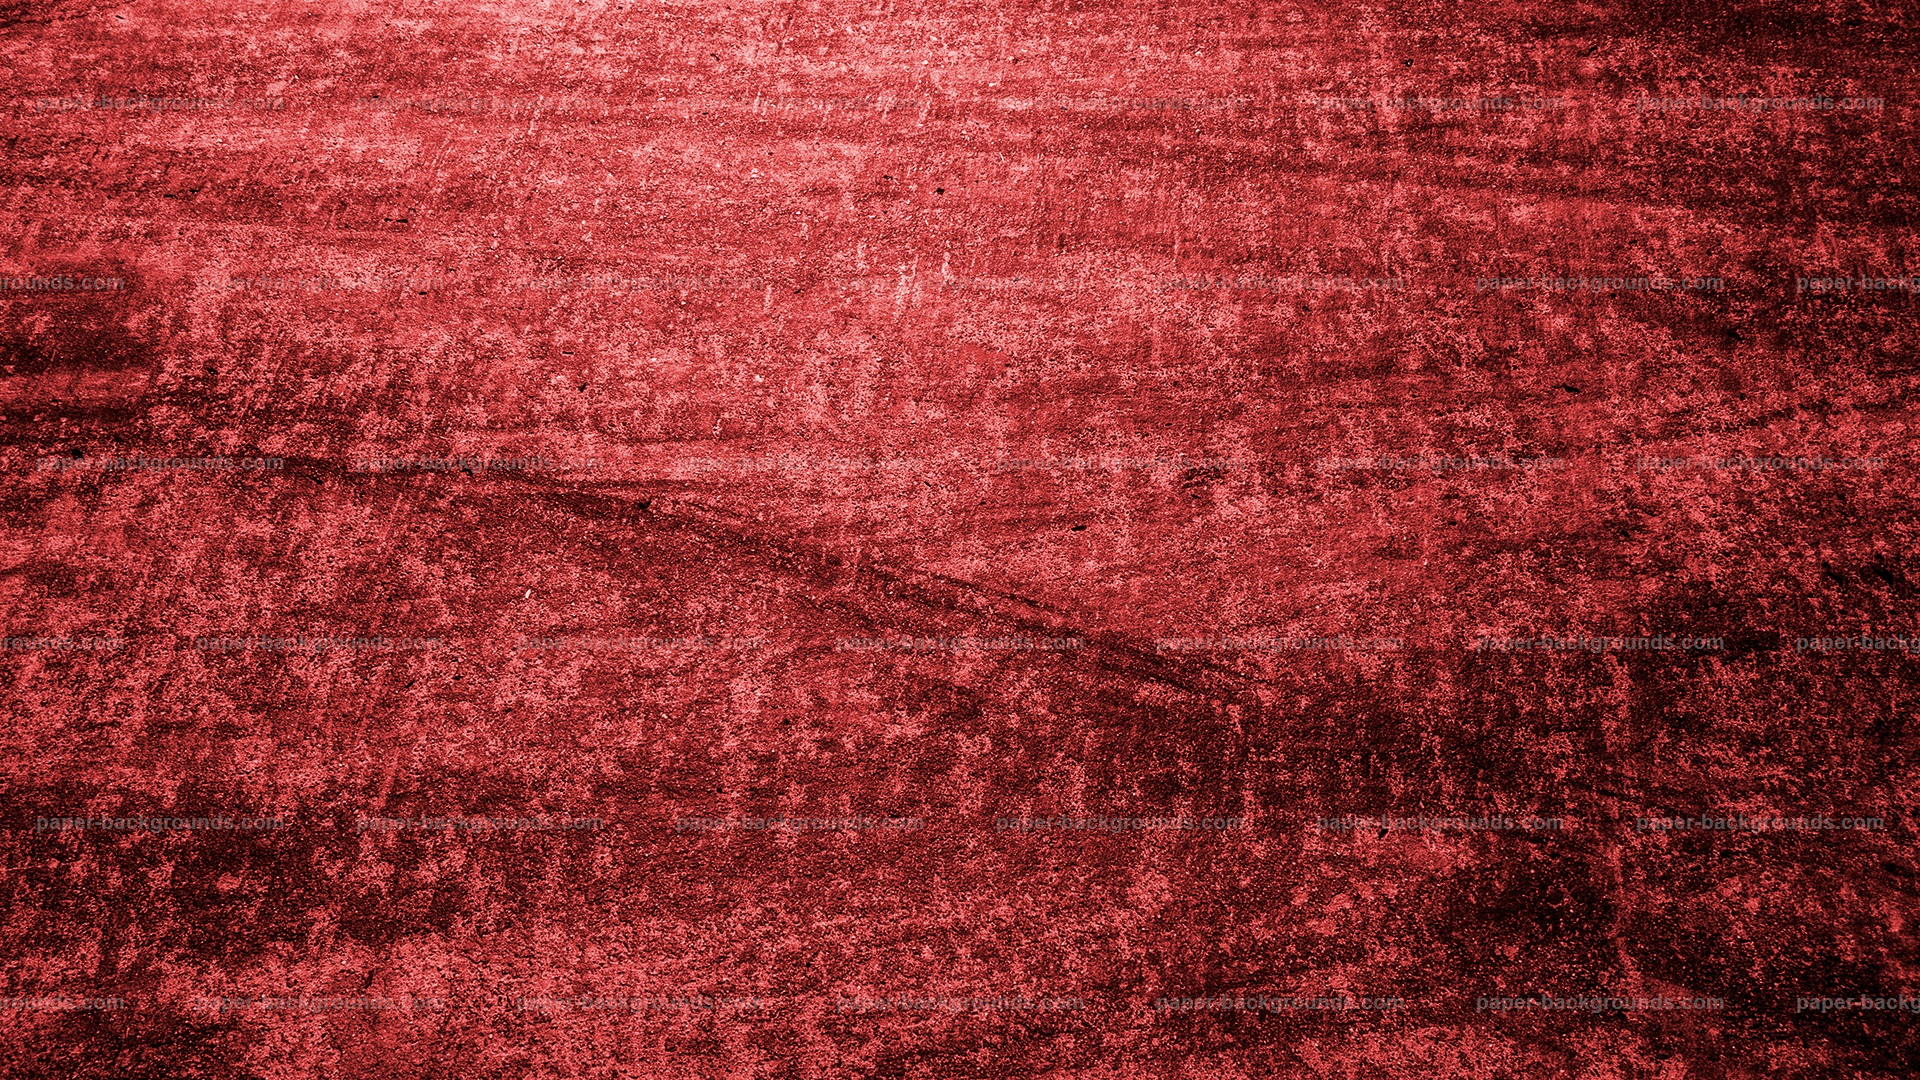 Popular Wallpaper Halloween Grunge - red-grunge-concrete-texture-hd  Picture_809689.jpg